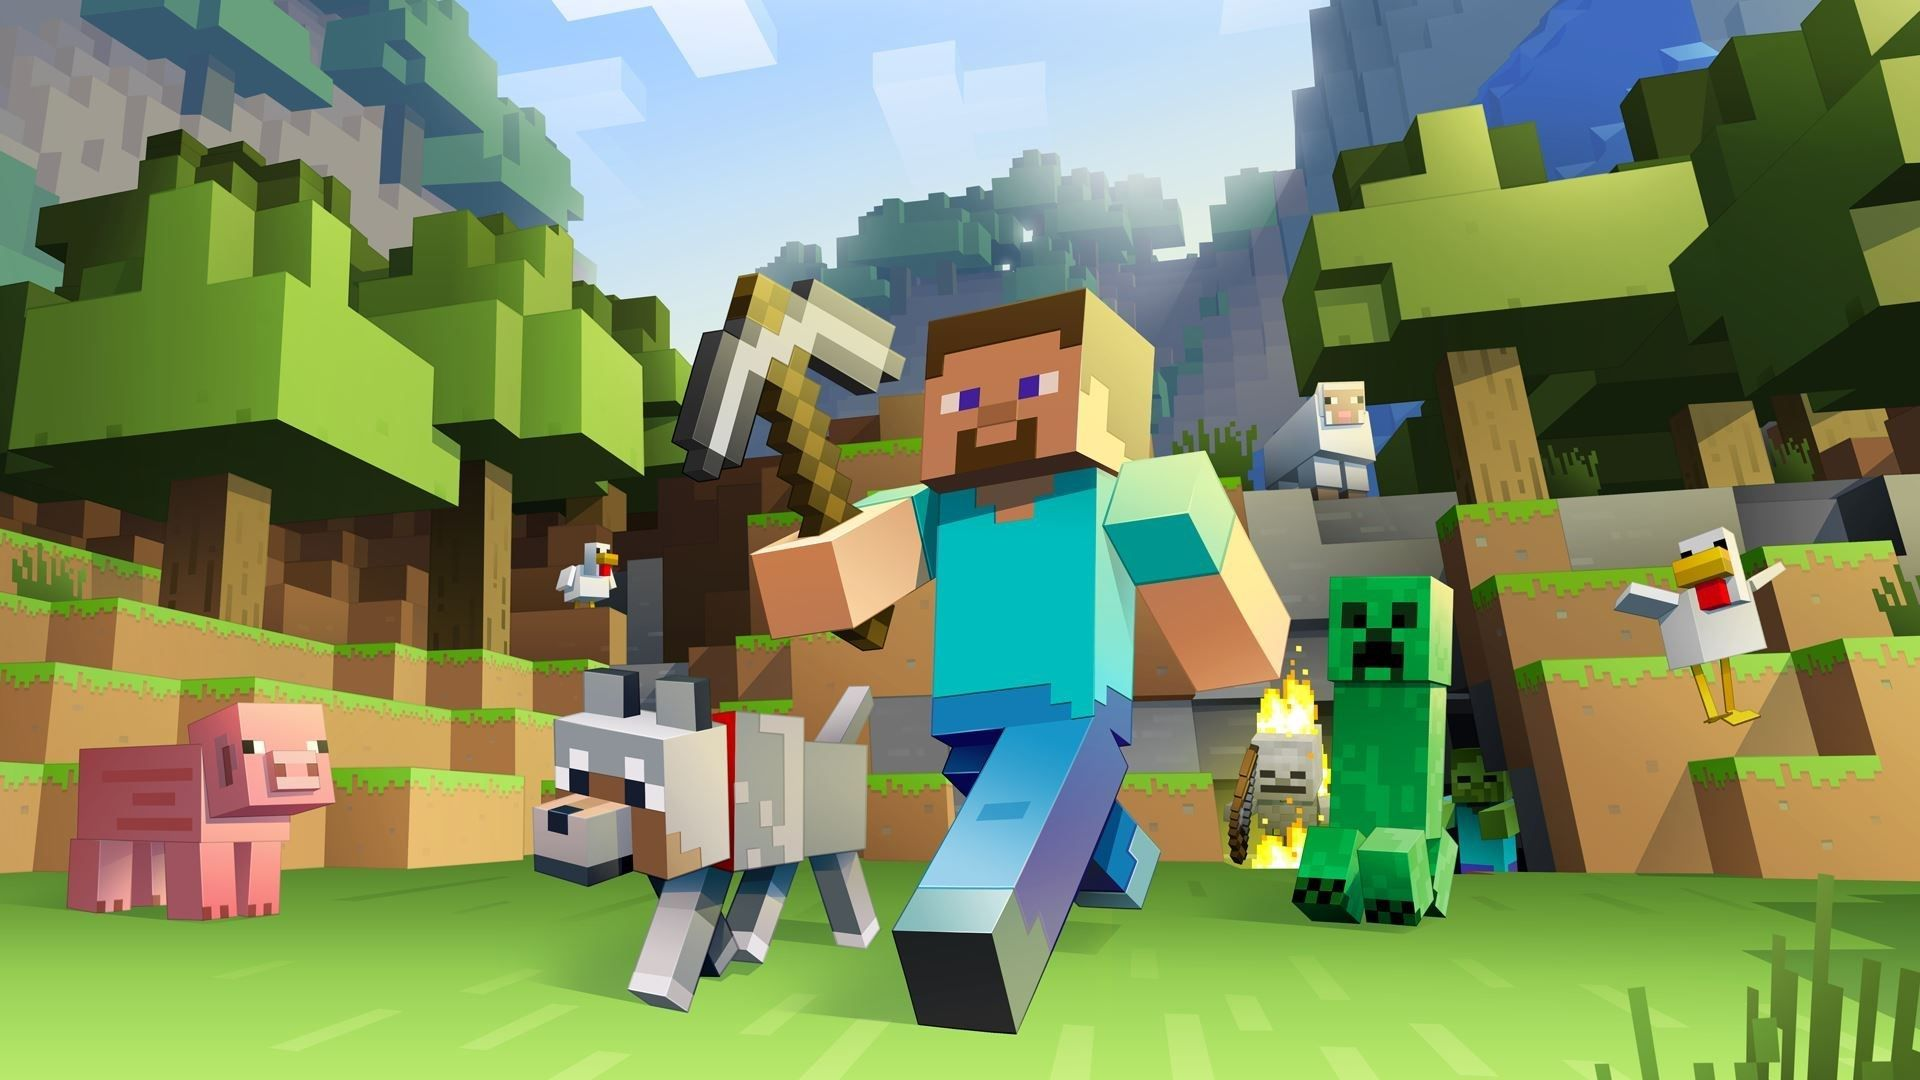 Minecraft Steve Wallpapers Top Free Minecraft Steve Backgrounds Wallpaperaccess